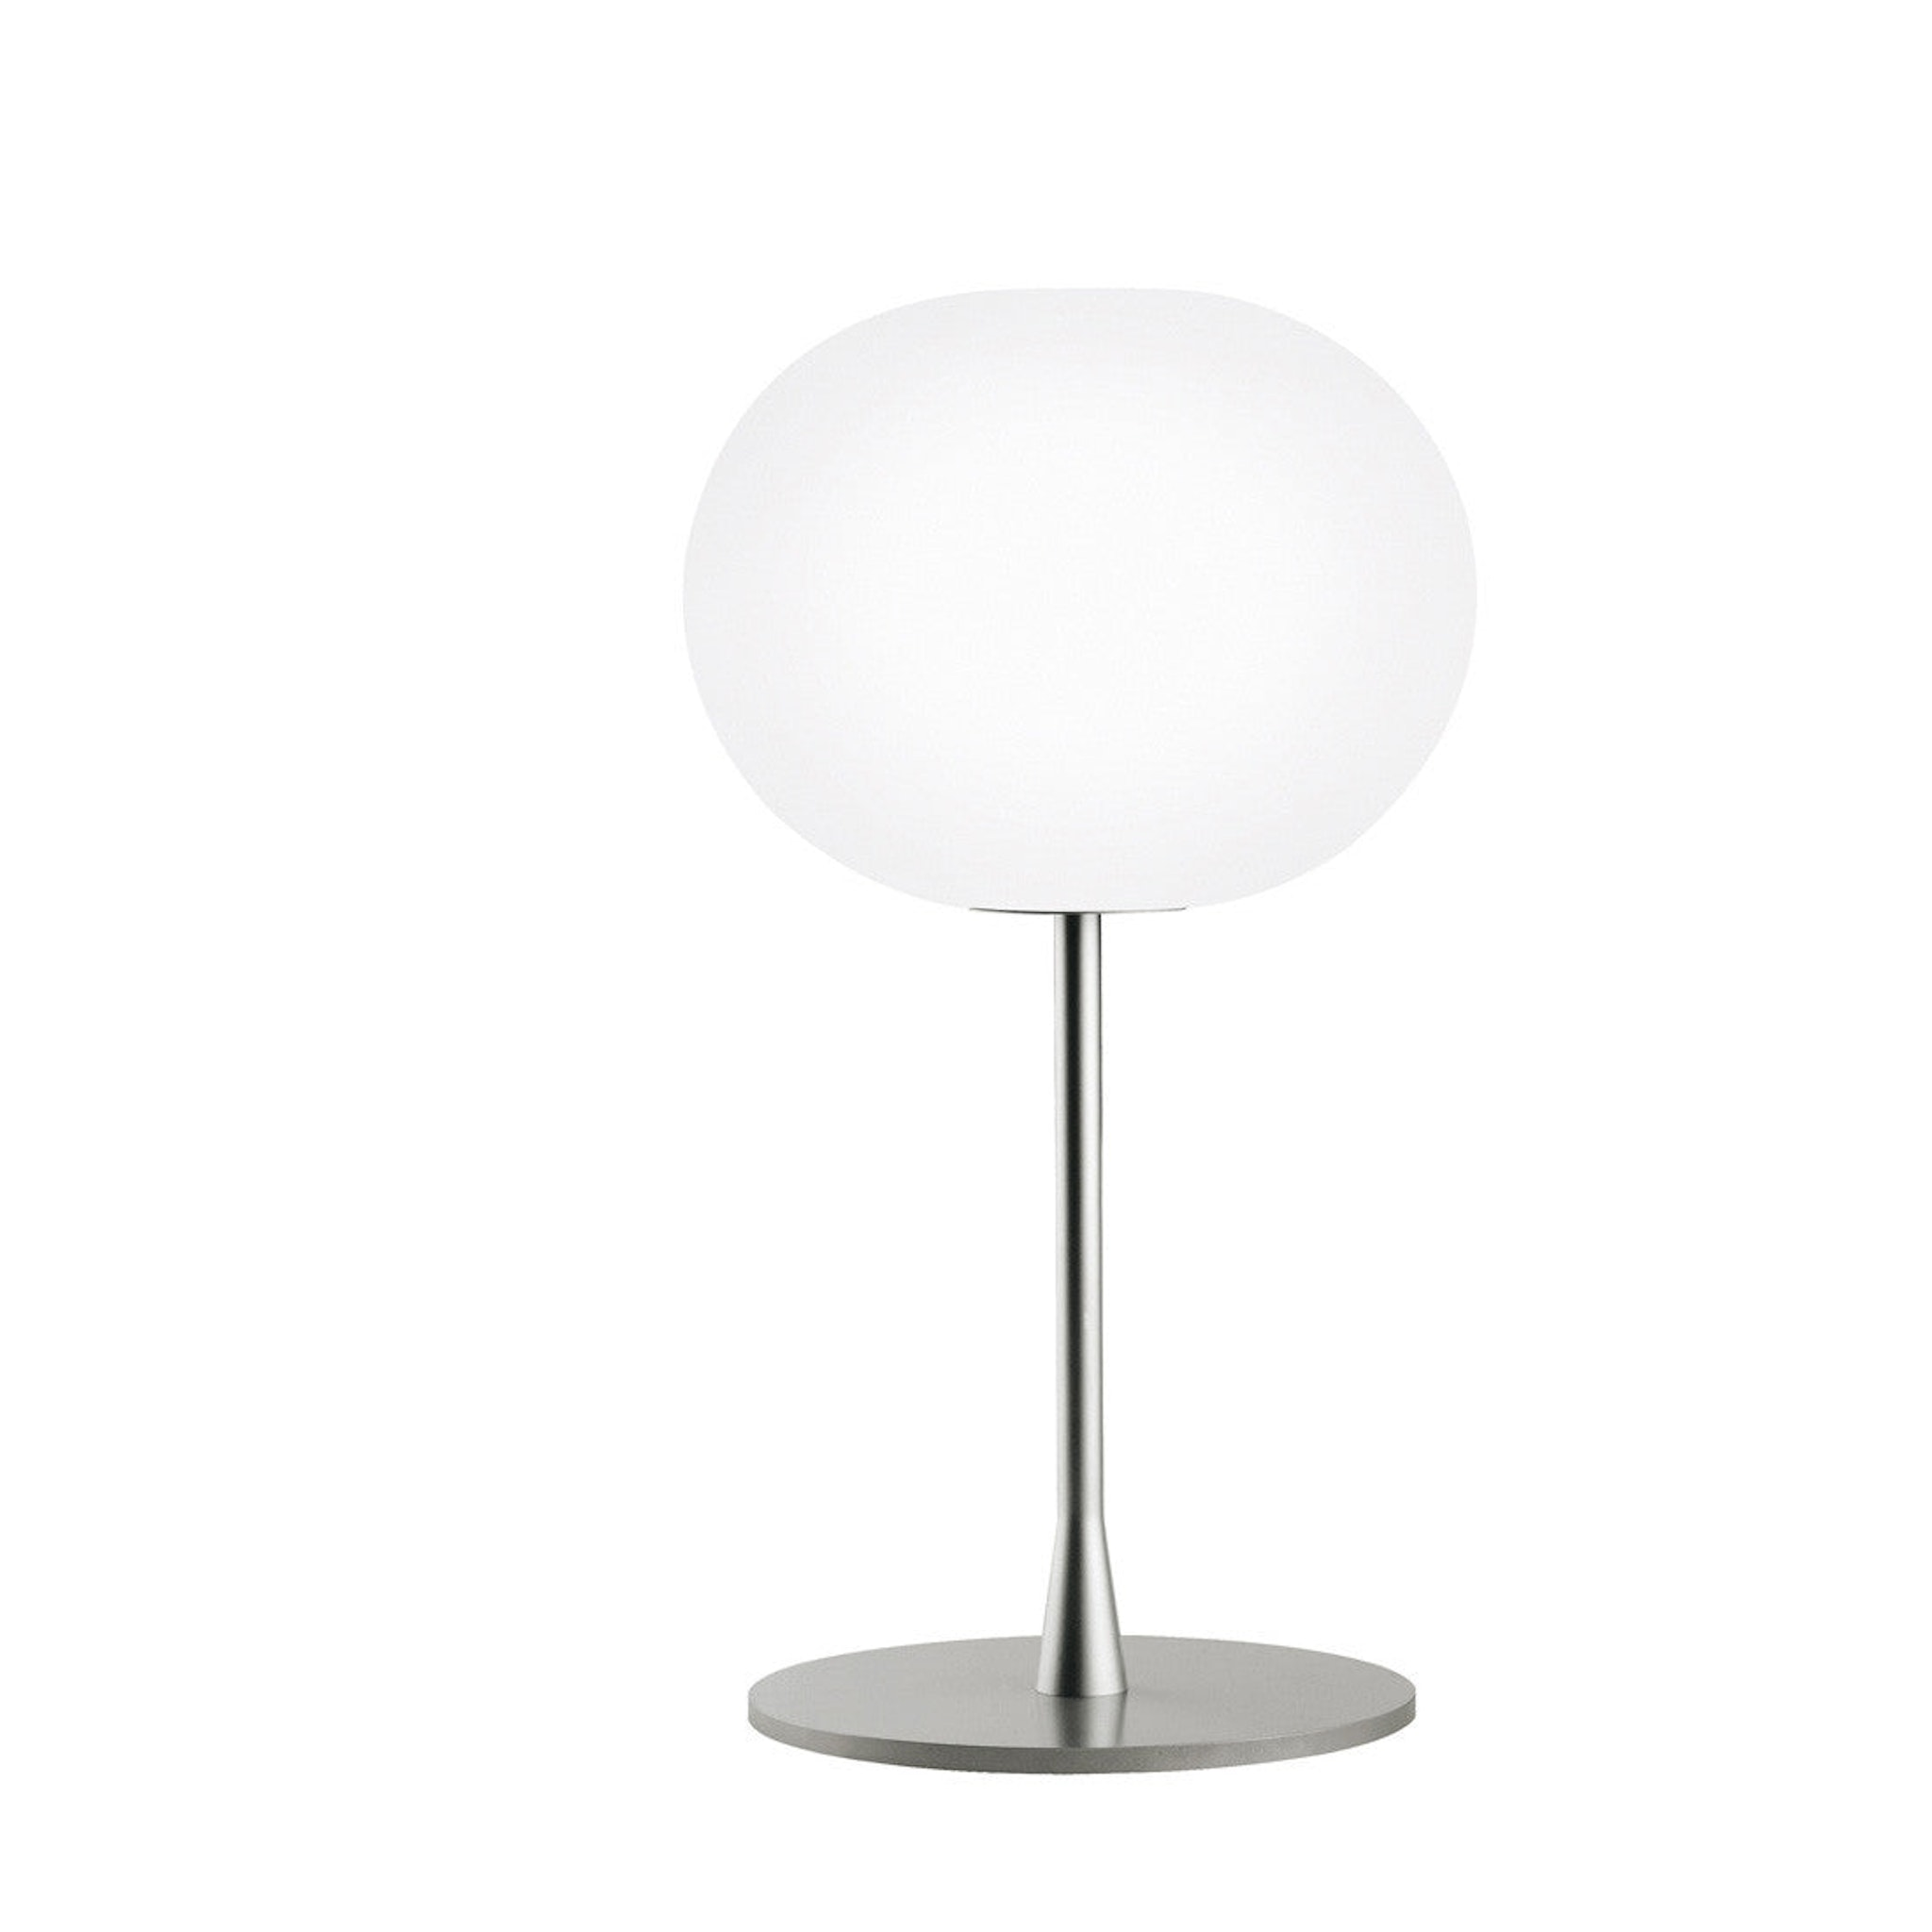 Glo Ball Table Lamp by Flos